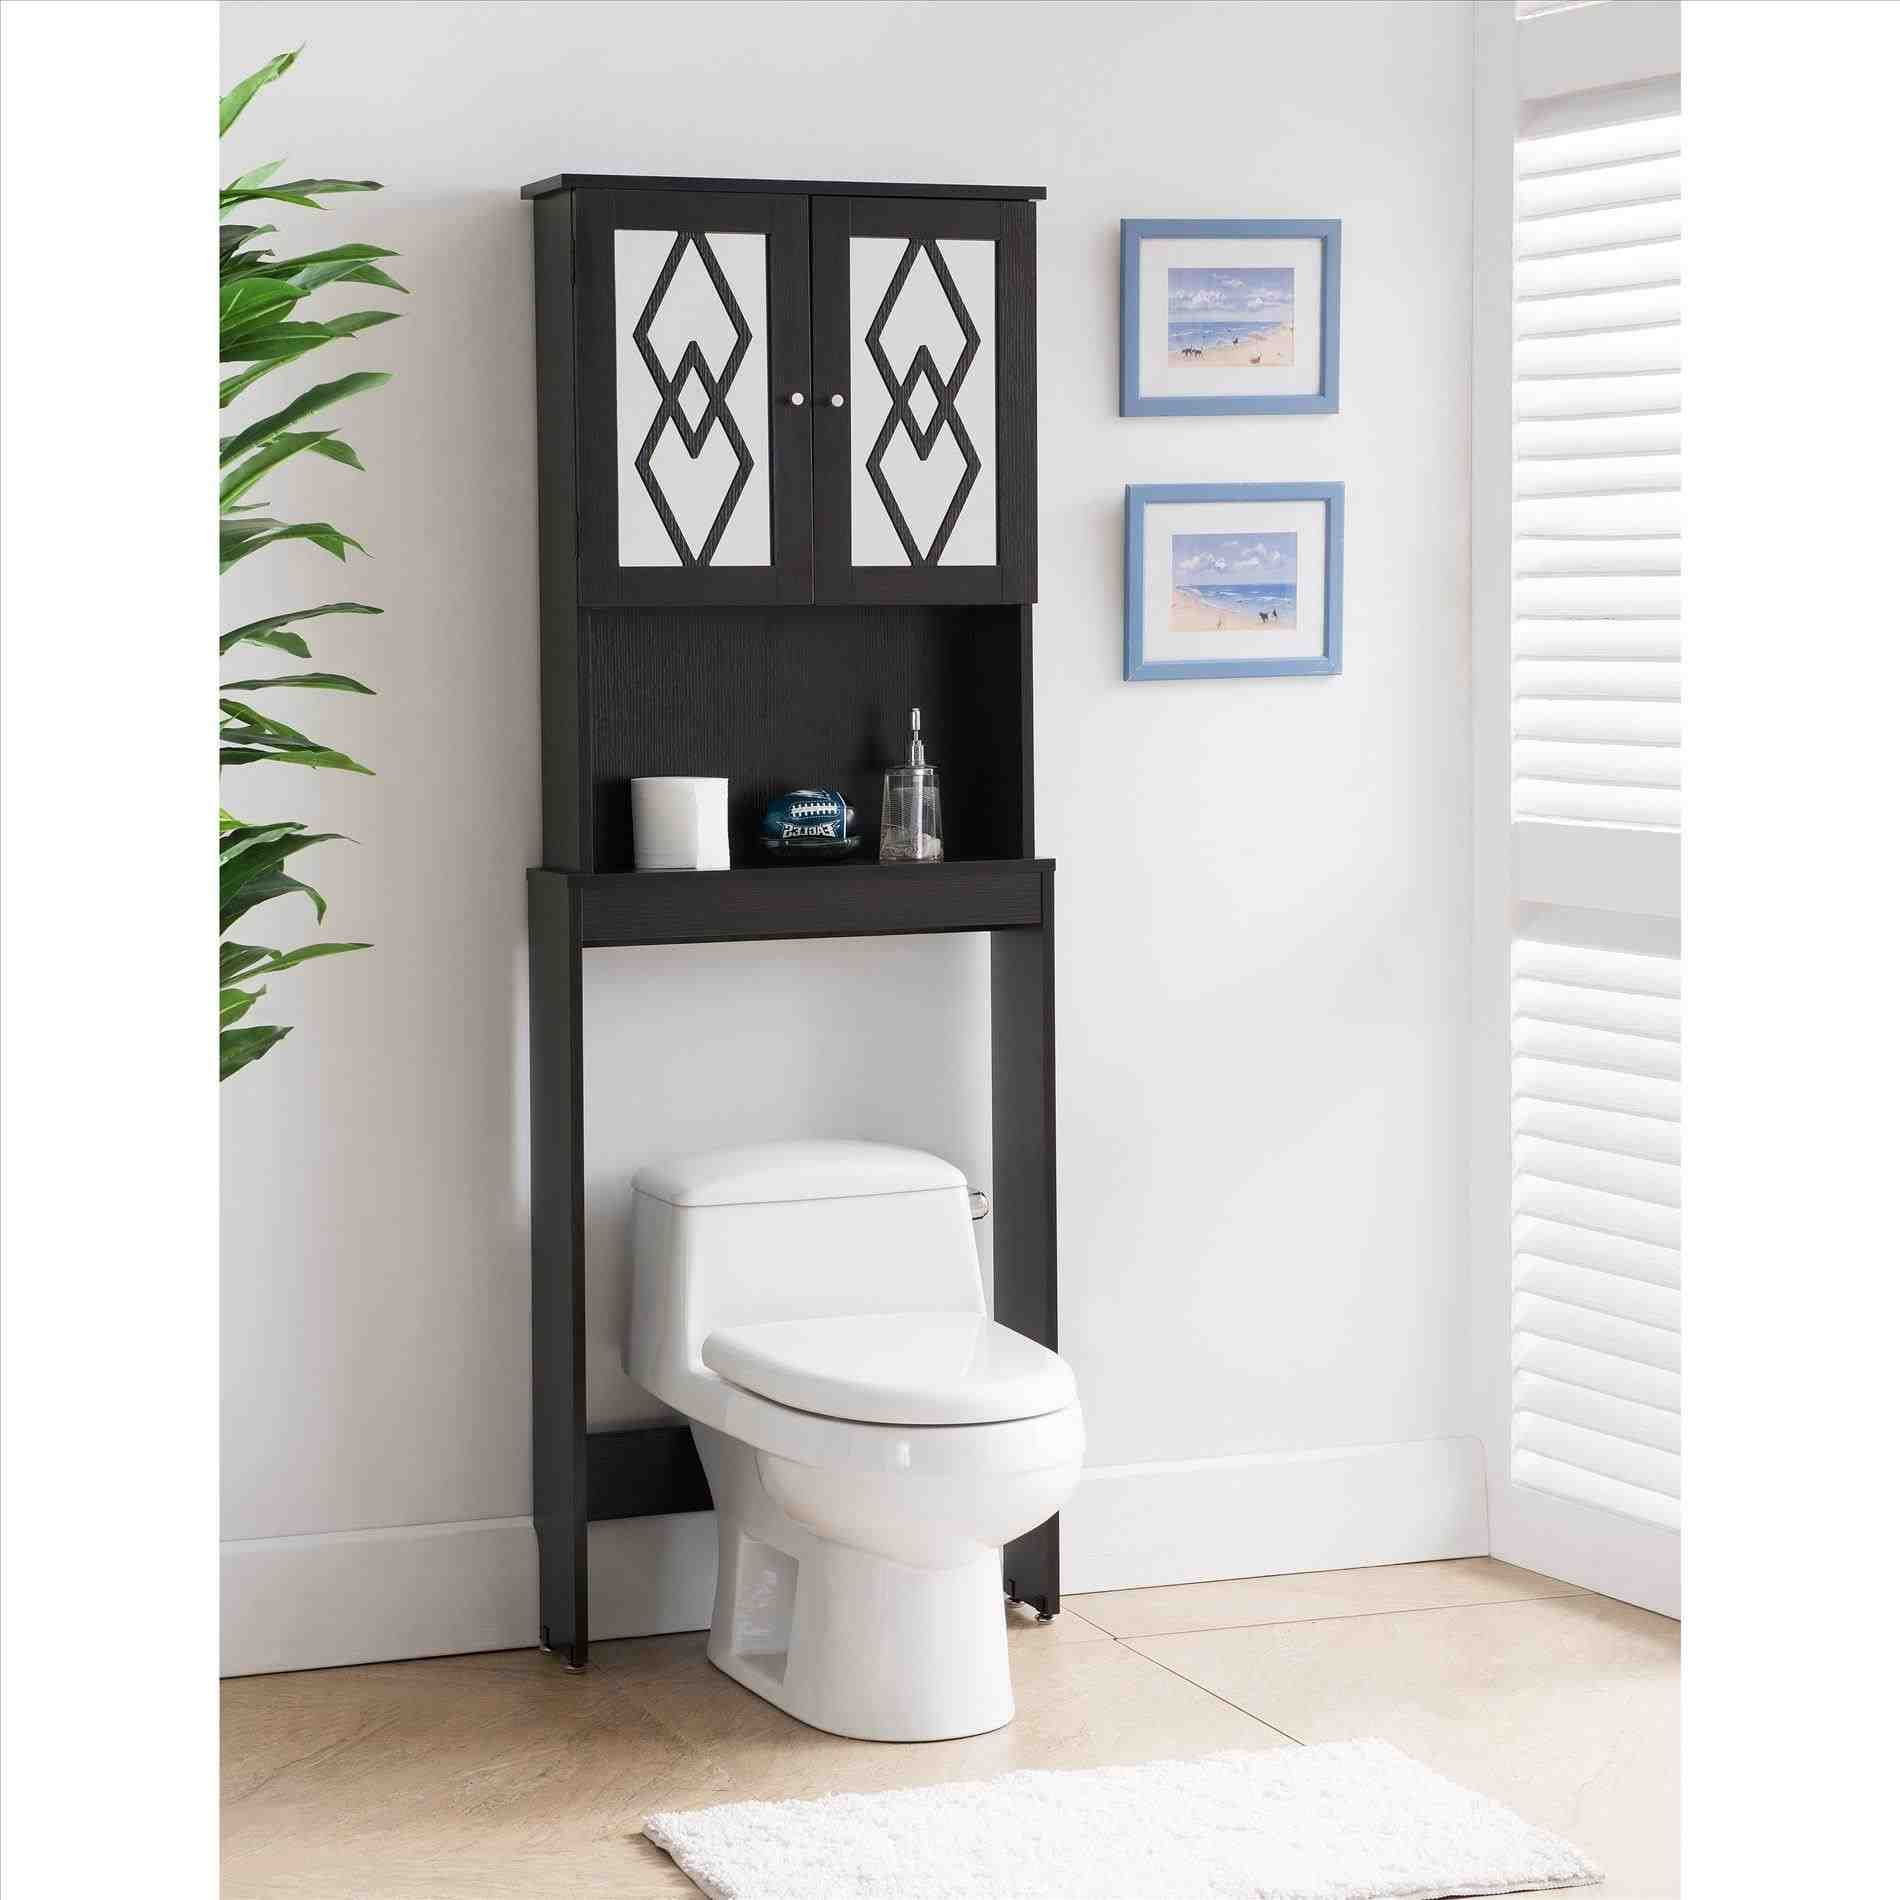 unique l furniture bathroom charming design towel ikea toto cabinets picture also etagere with and ideas toilets whitebathroometagerewith